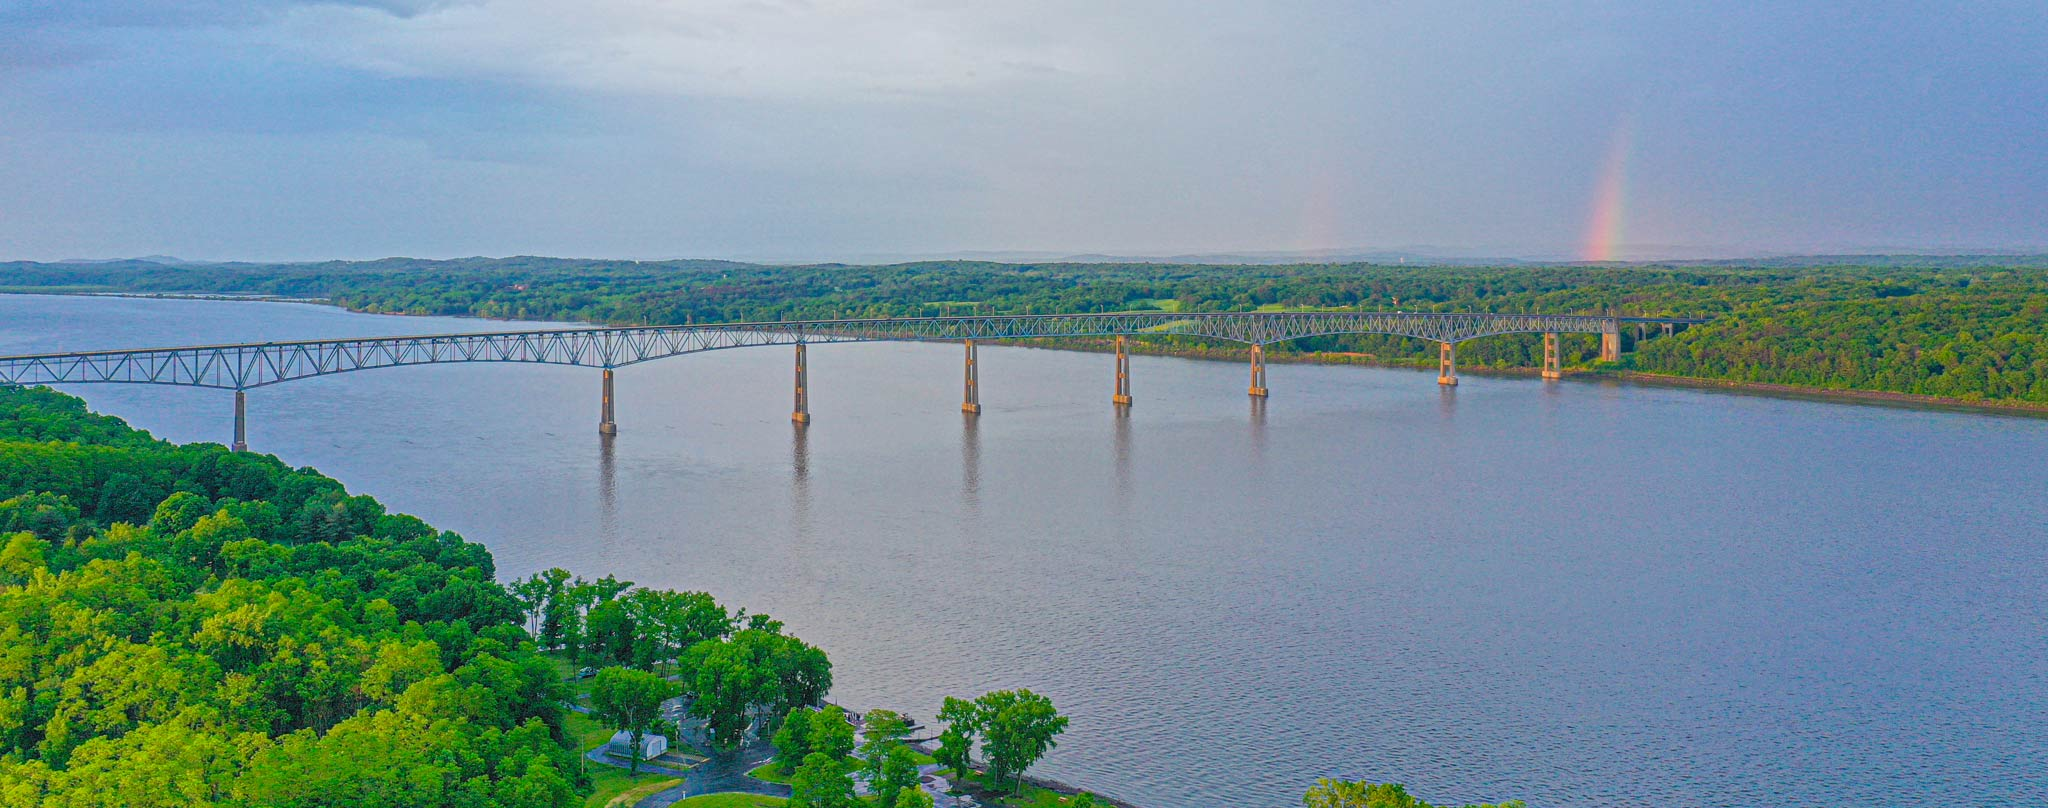 Kingston Rhinecliff Bridge with Rainbow